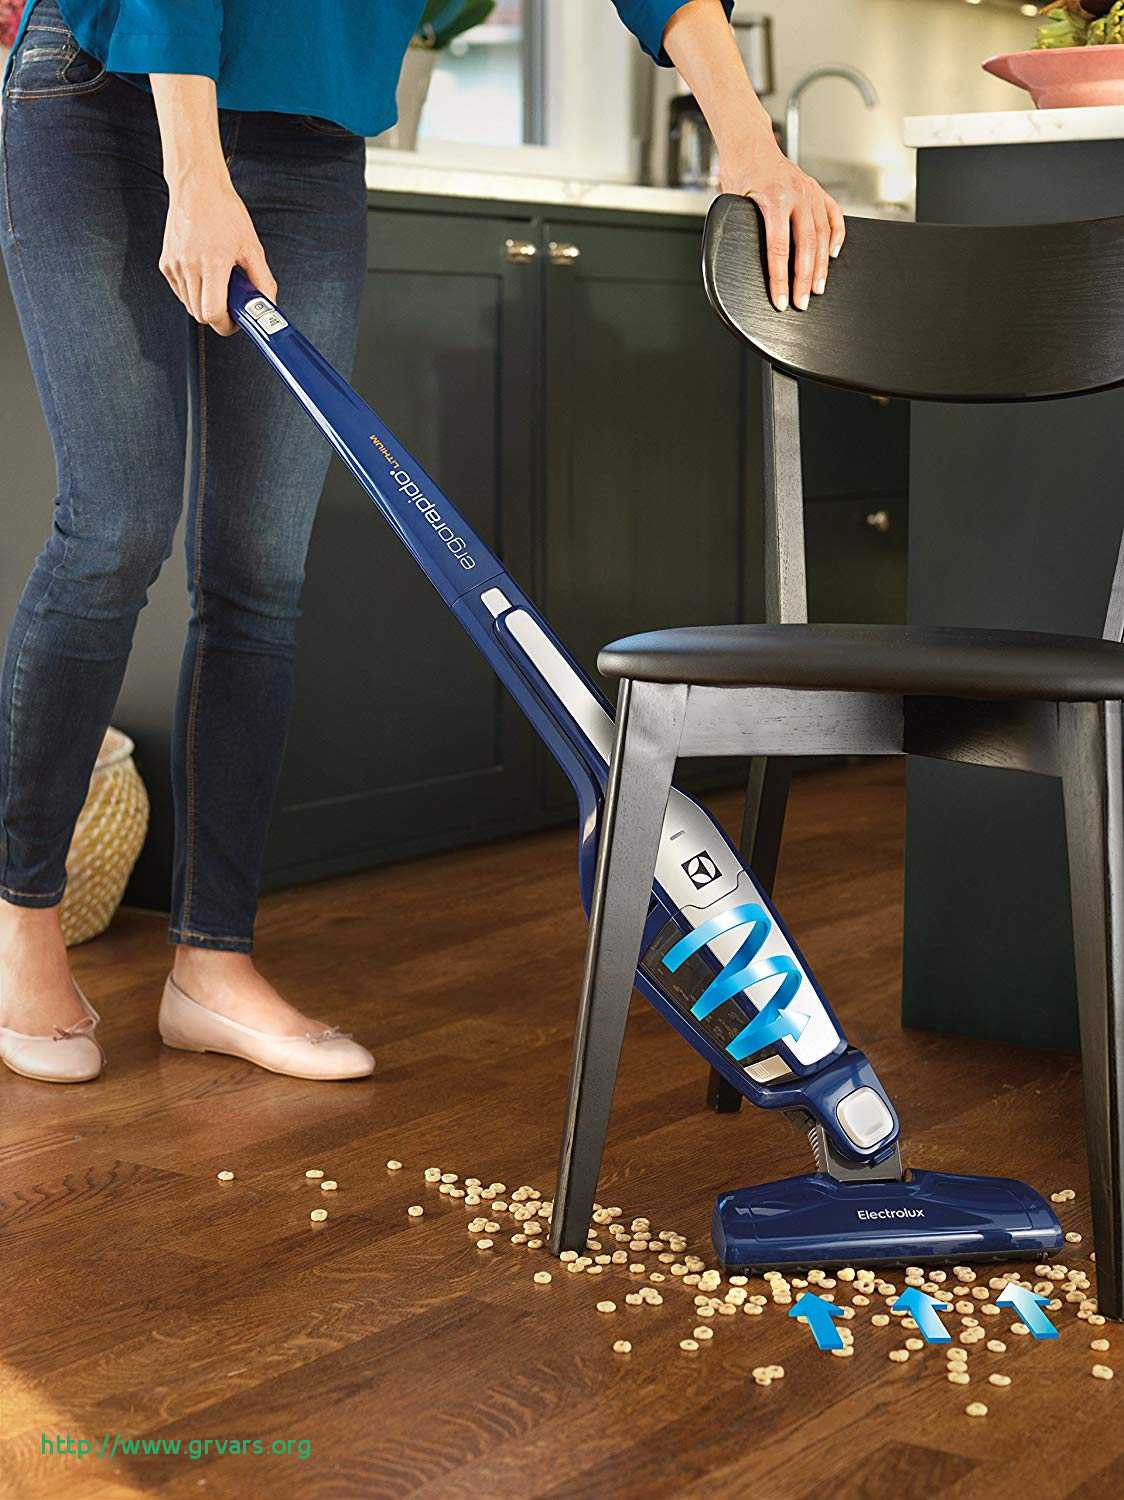 hardwood floor duster vacuum of hardwood floor duster vacuum a‰lagant shark navigator lift away pro with hardwood floor duster vacuum beau amazon electrolux ergorapido lithium ion 2 1 stick and handheld